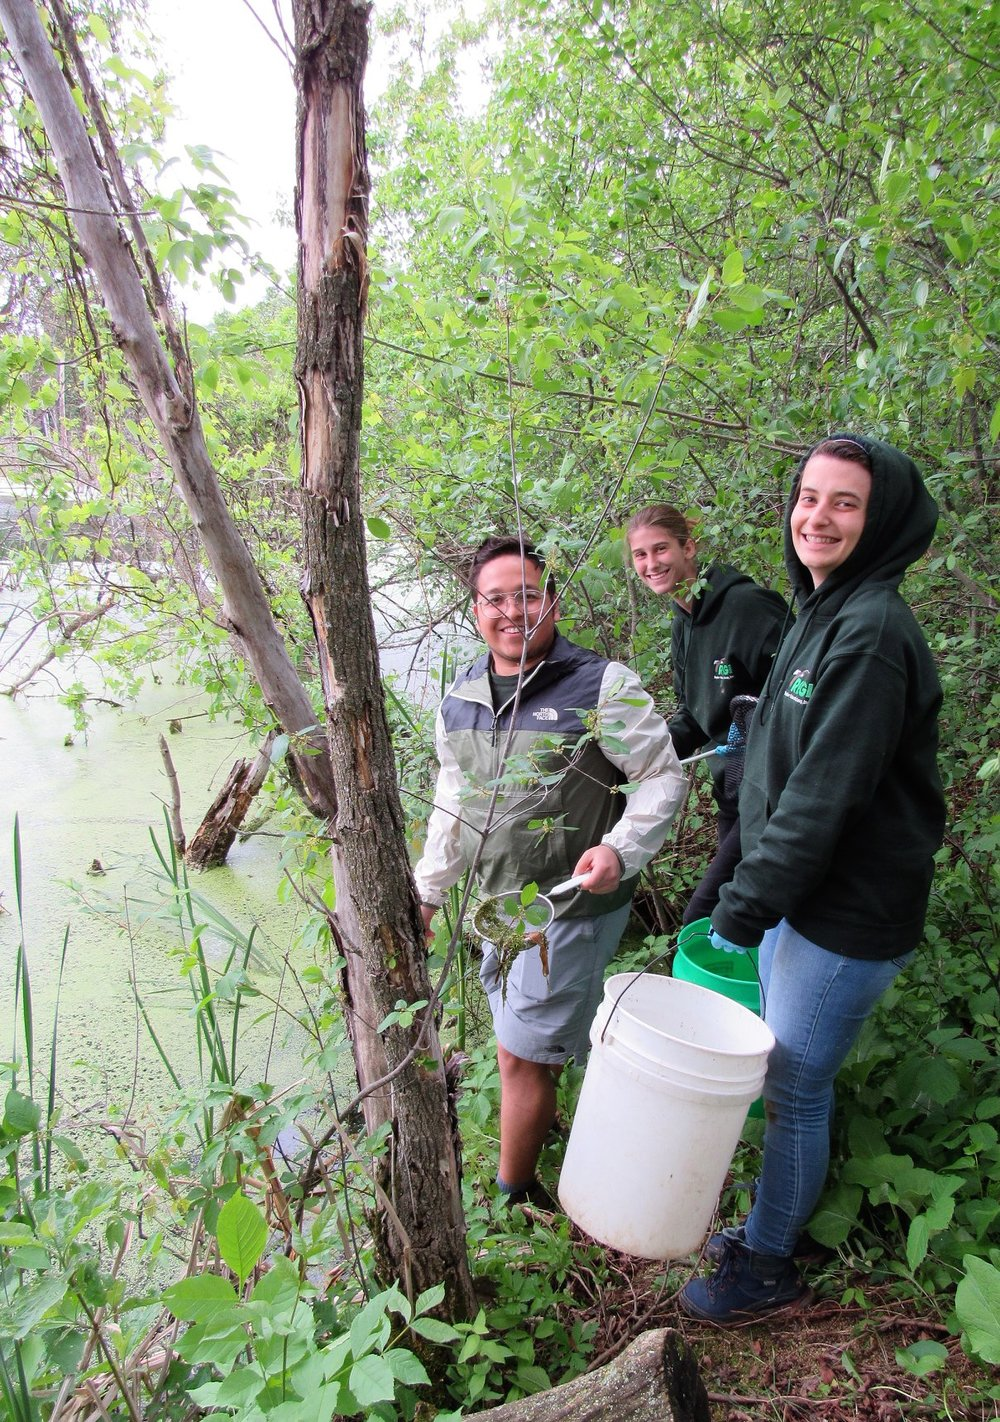 Interns capturing wild duck weed. We need a LOT of clean duck weed to feed our growing colony of baby ducks.